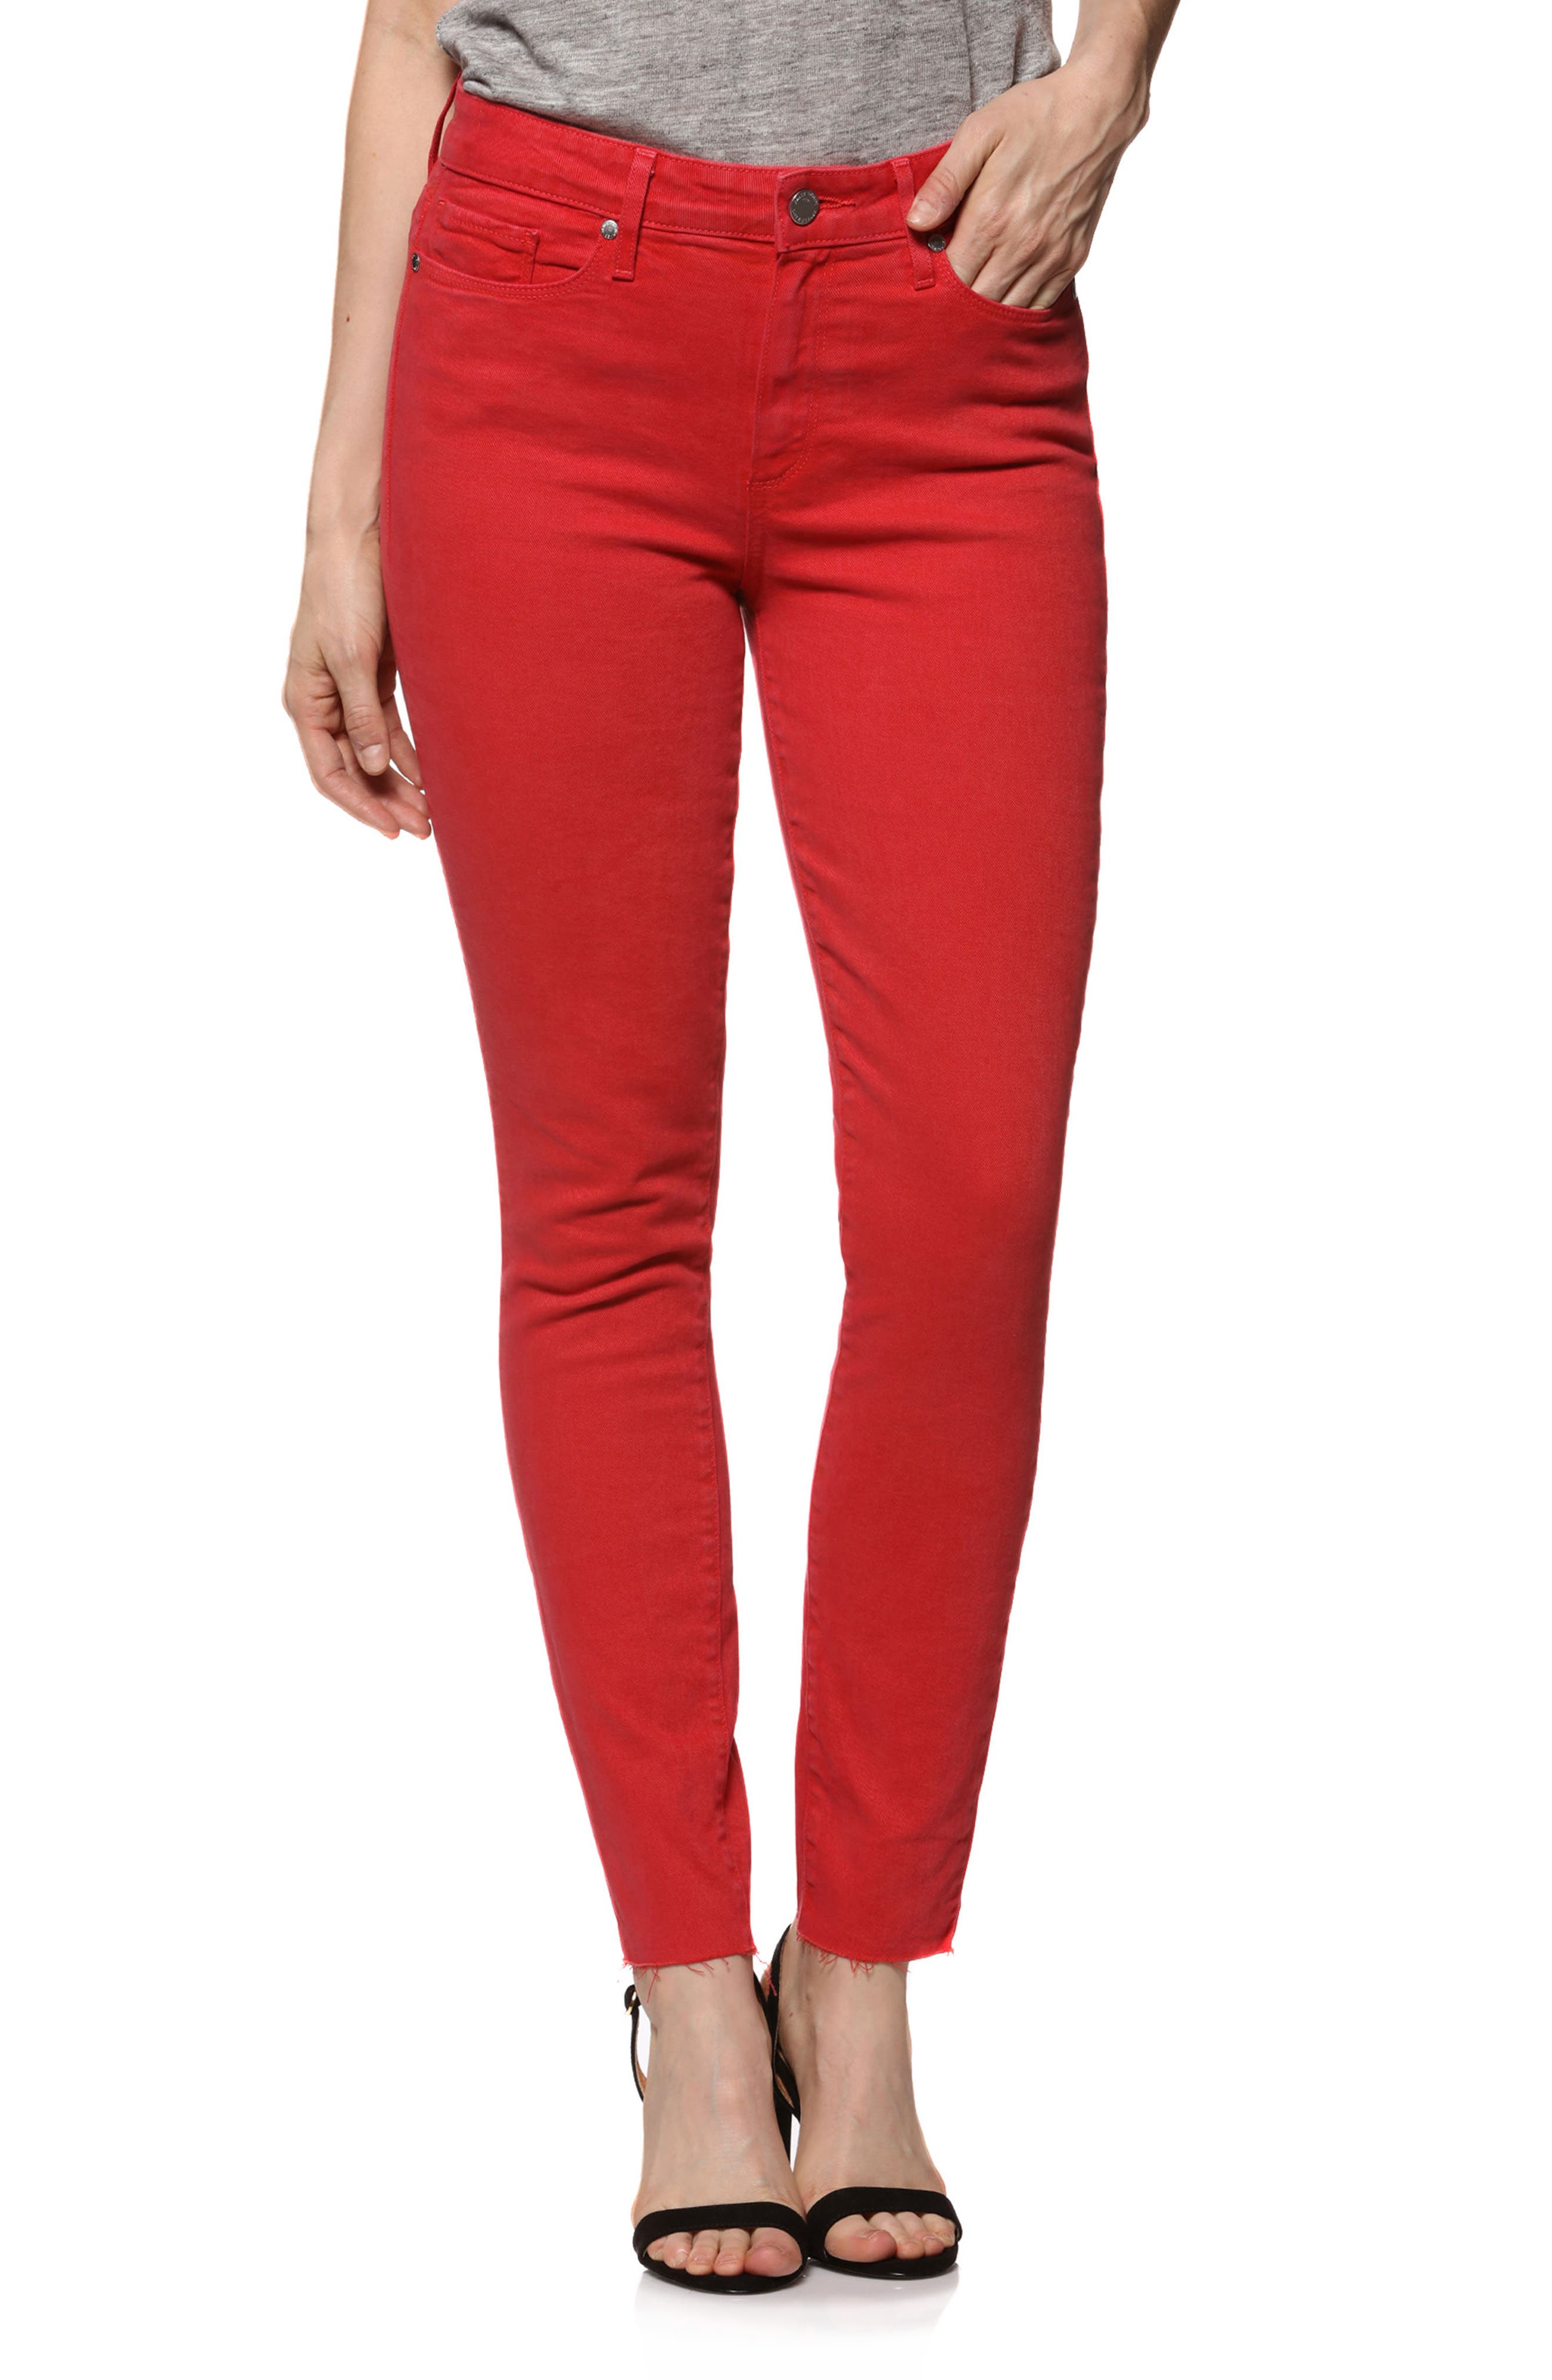 Hoxton High Waist Ankle Skinny Jeans,                             Main thumbnail 1, color,                             Vintage Cherry Bomb